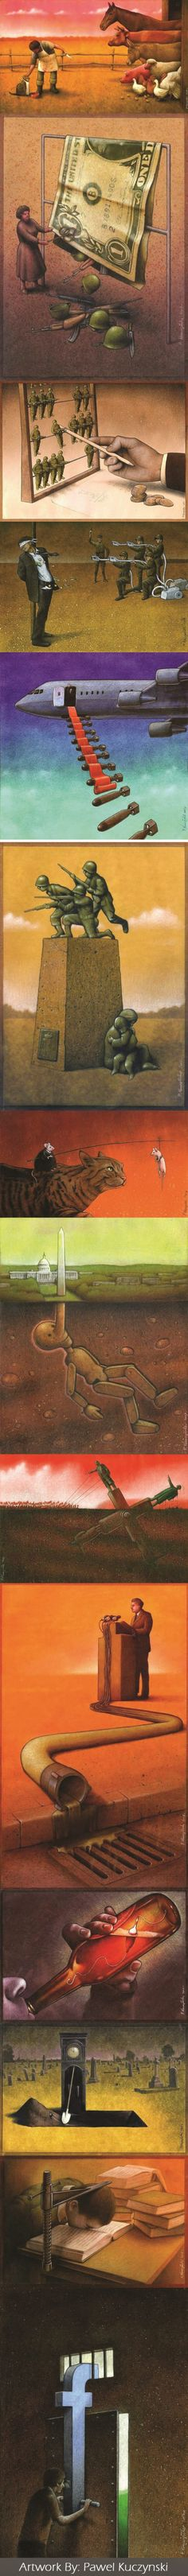 14 Images To Question The World We Live In (Pawel Kuczynski)4